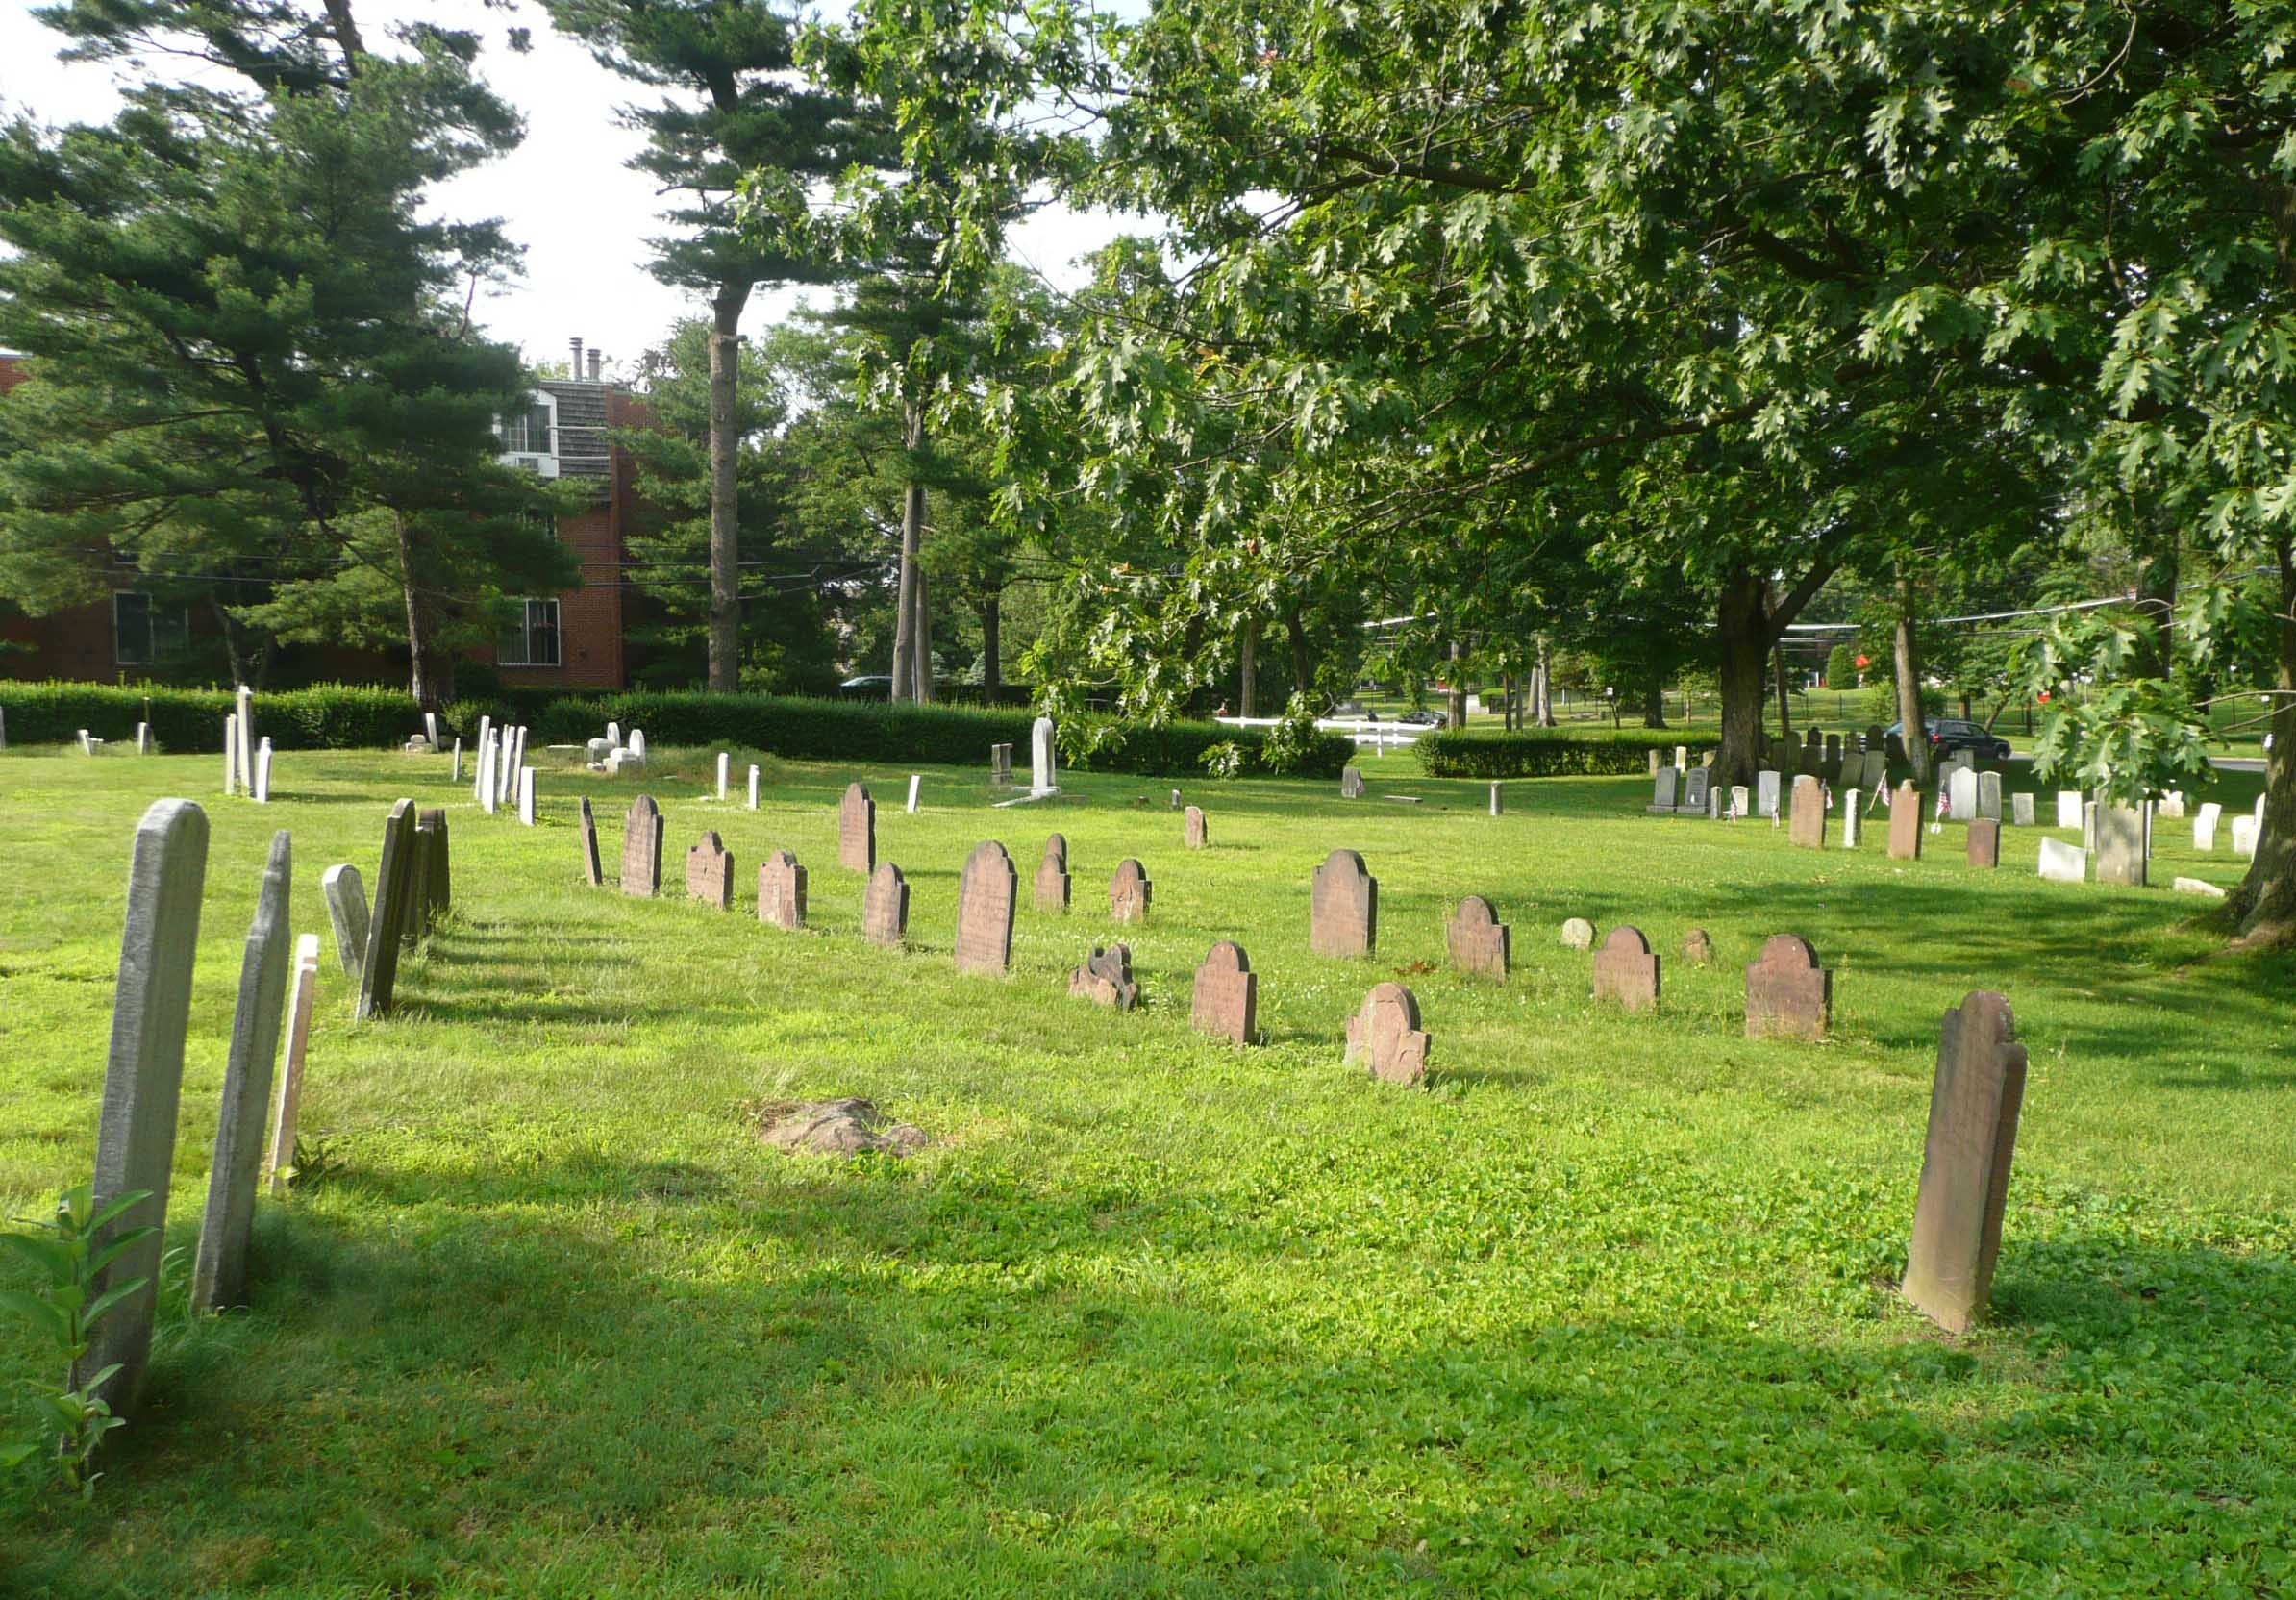 A portion of the White Plains Presbyterian Church Cemetery.